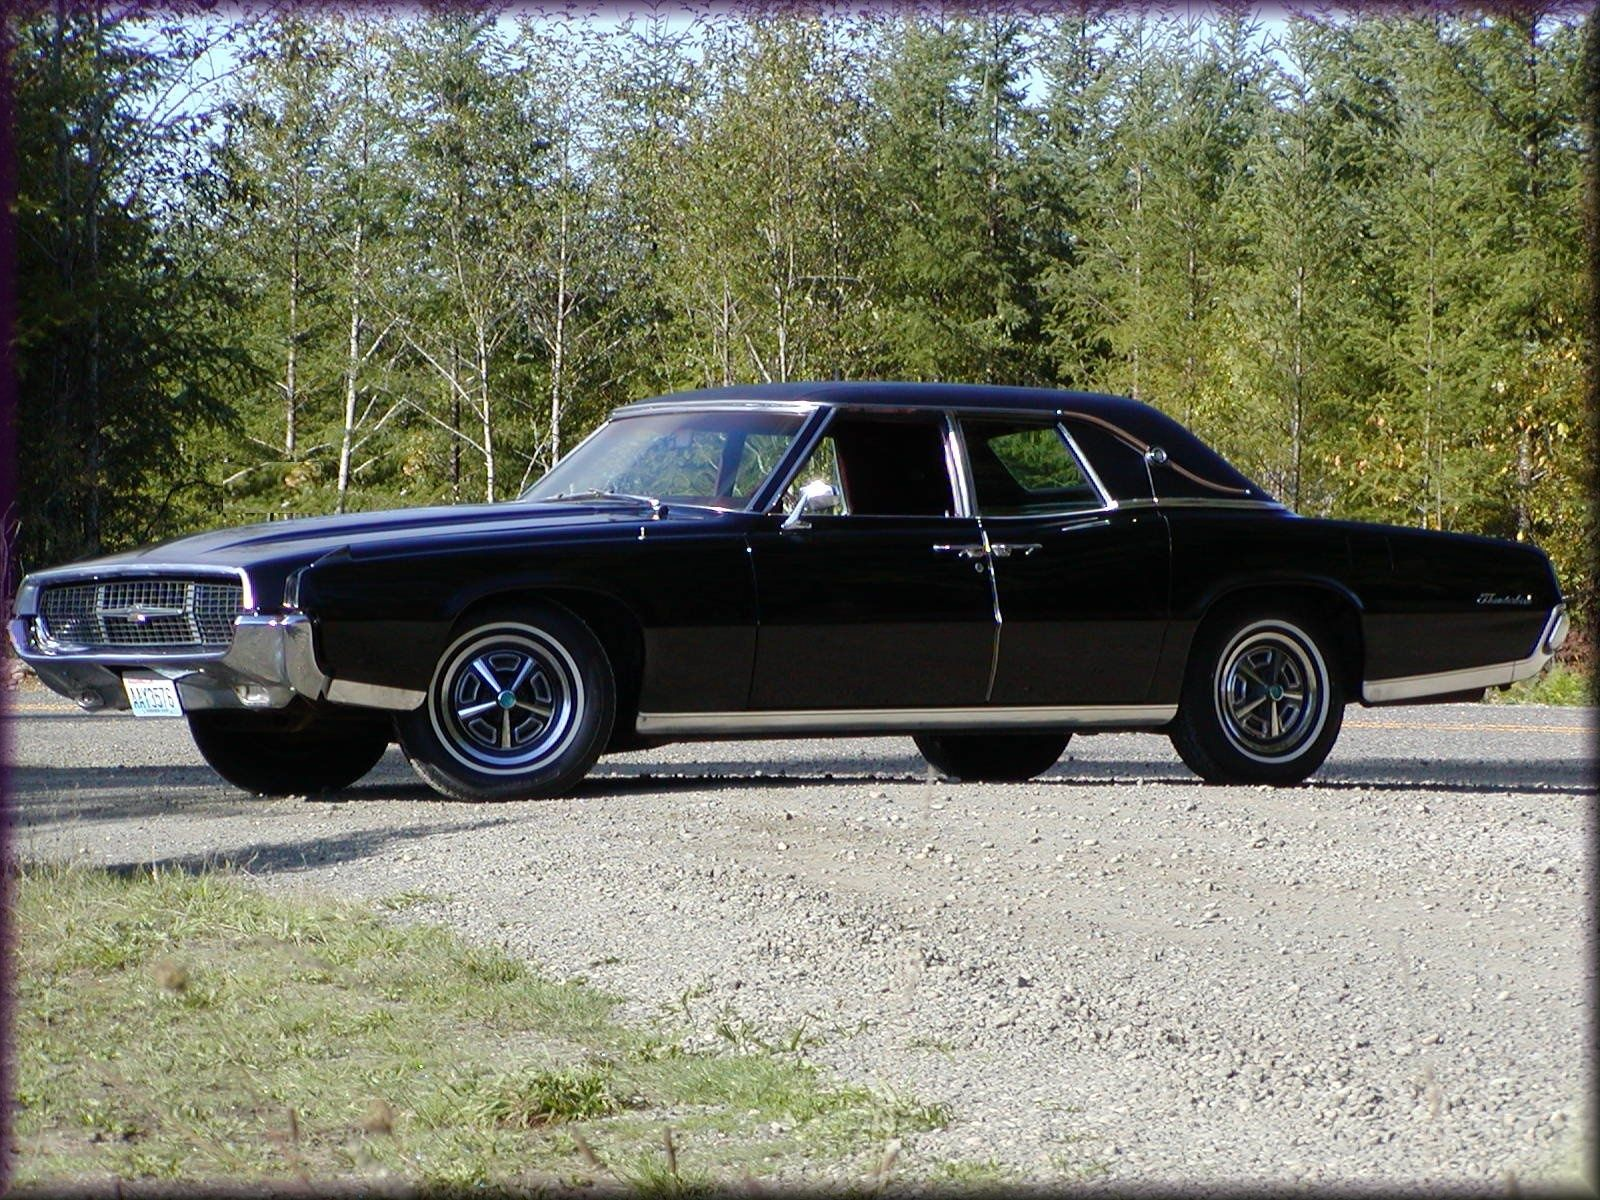 1967 Ford Thunderbird Maintenance of old vehicles: the material ...